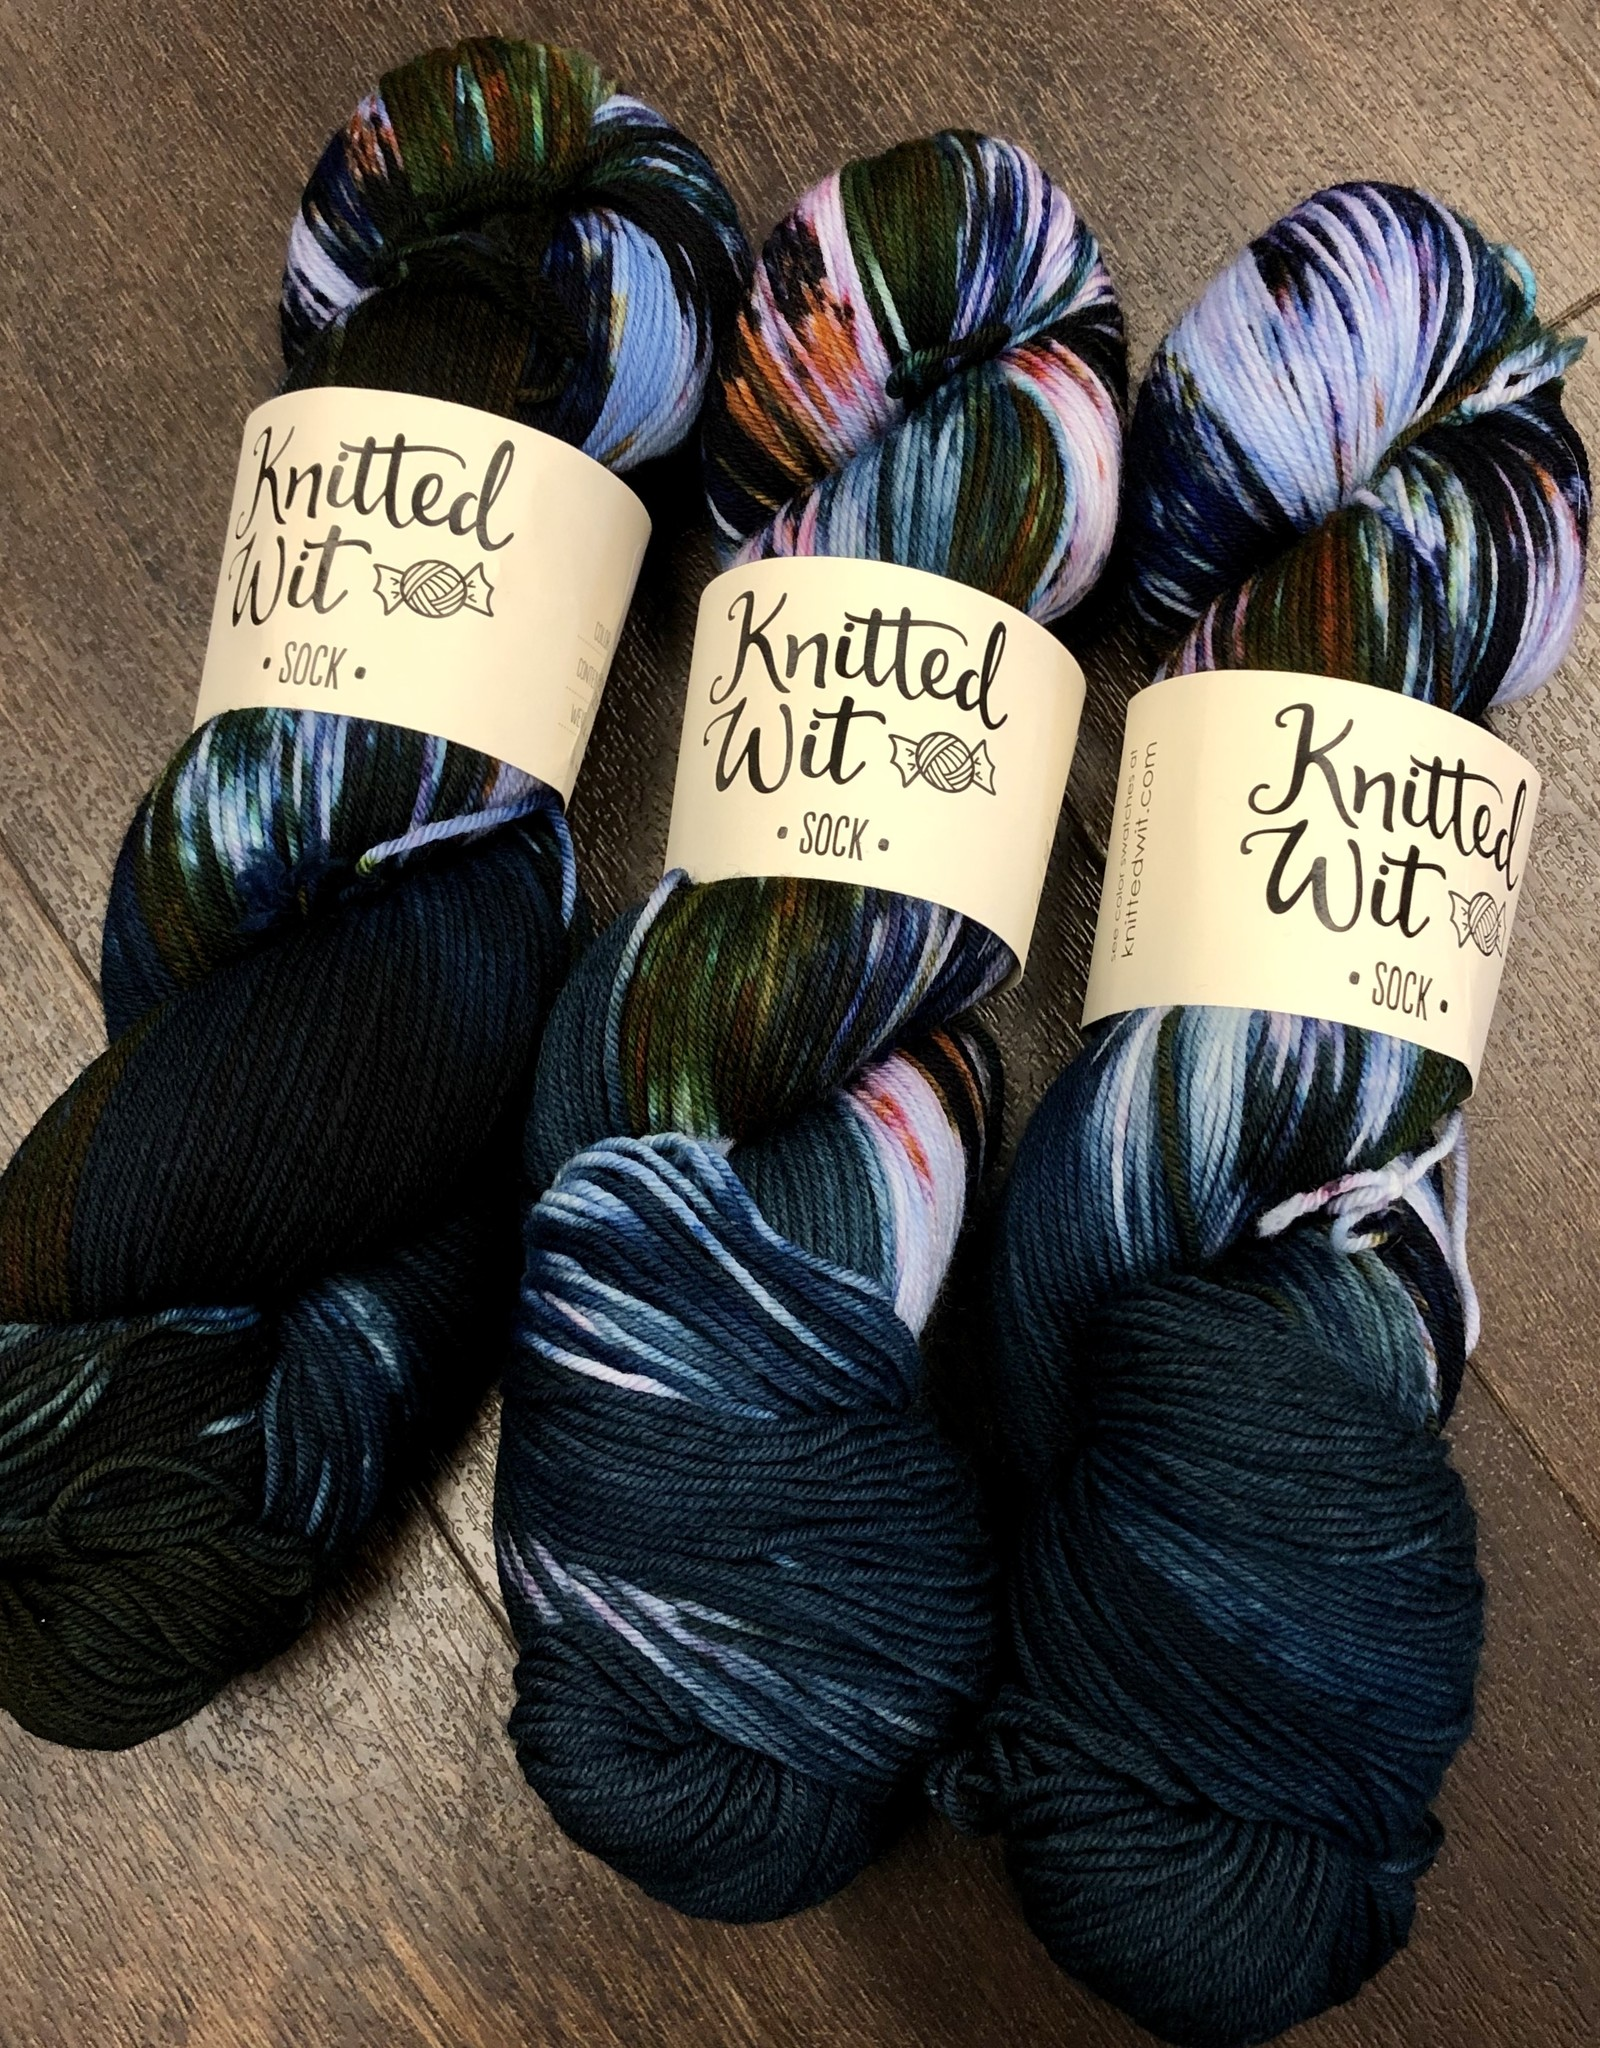 Knitted Wit Victory Sock by Knitted Wit